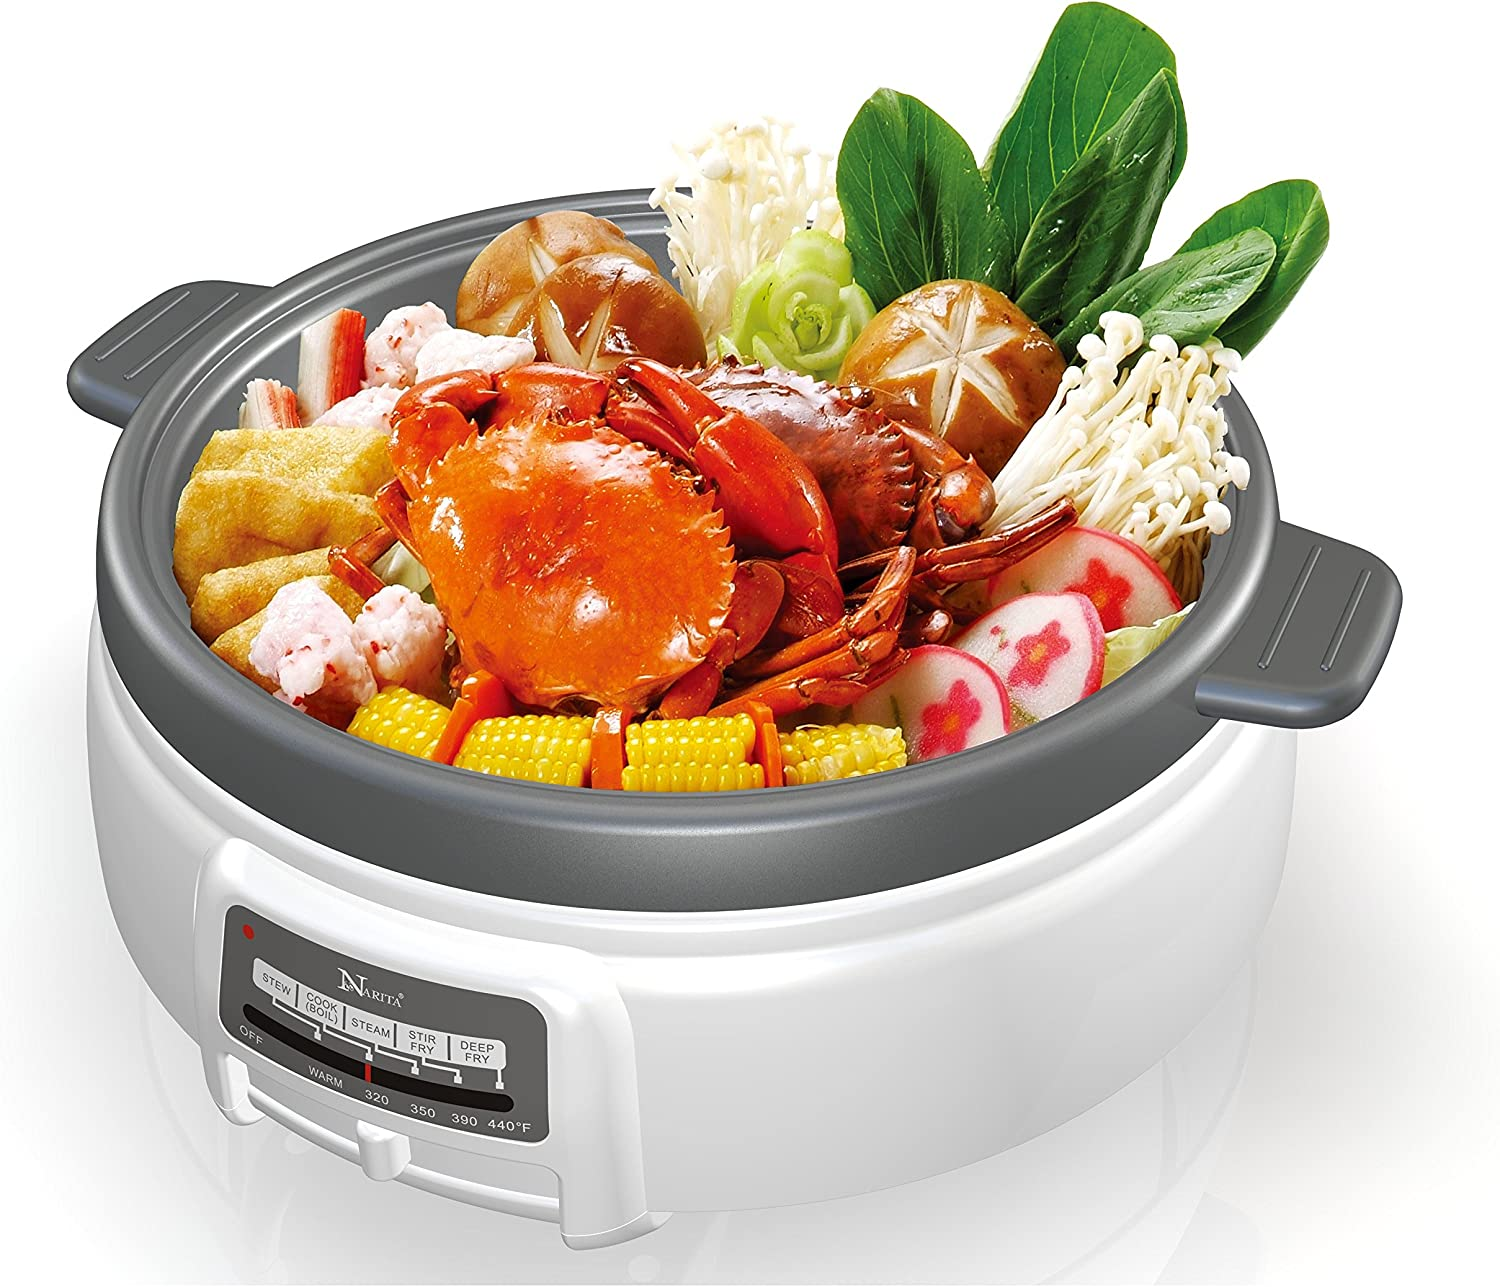 Electric Multi-Cooker Shabu Shabu hot pot by Narita